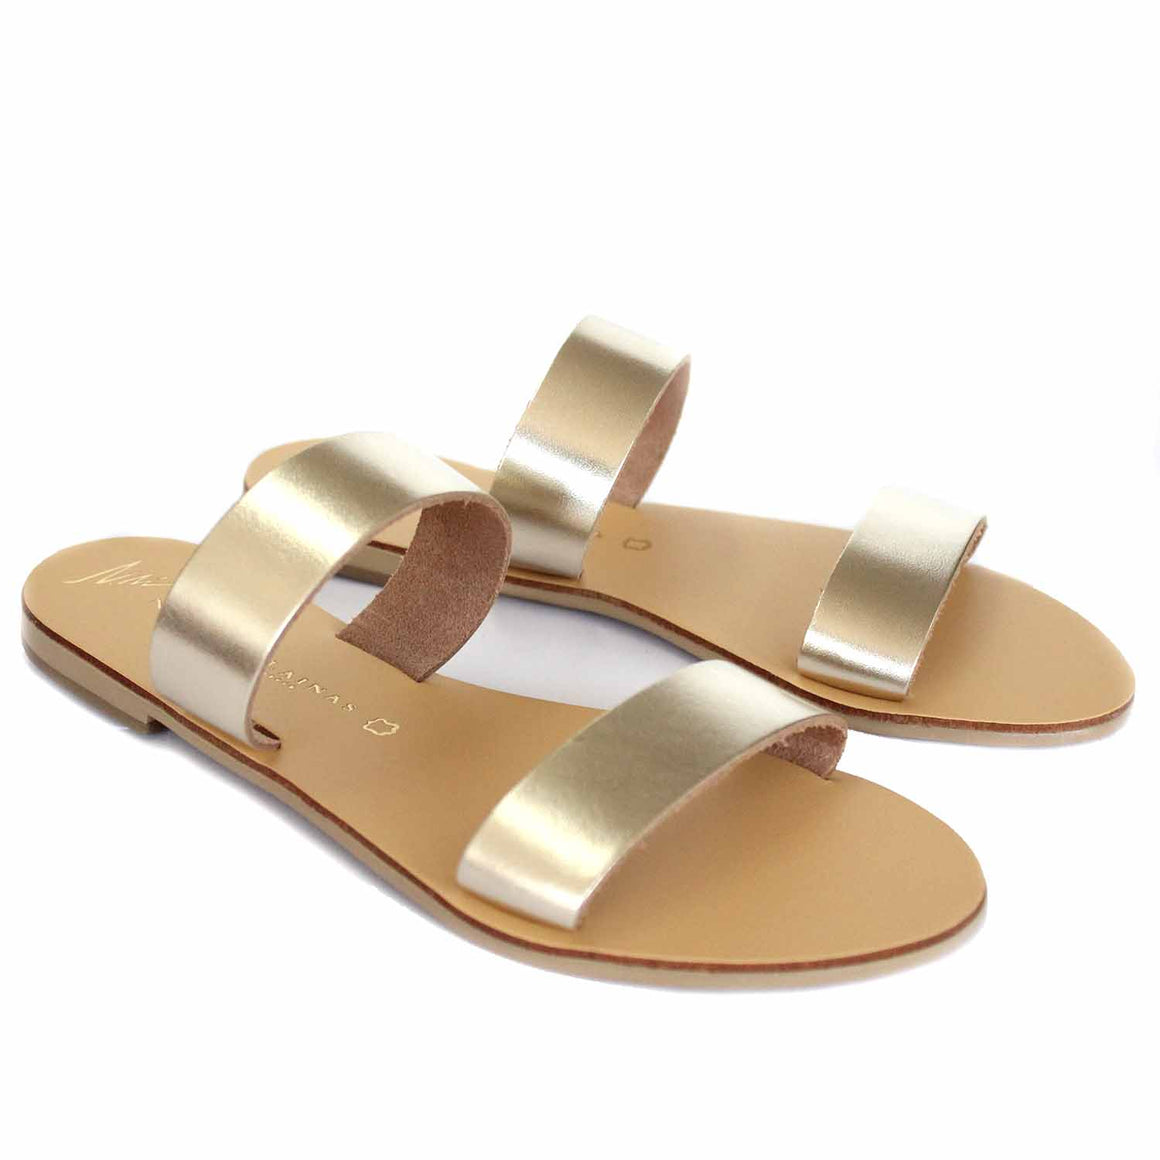 NICOLAS LAINAS 40 GOLD SANDALS